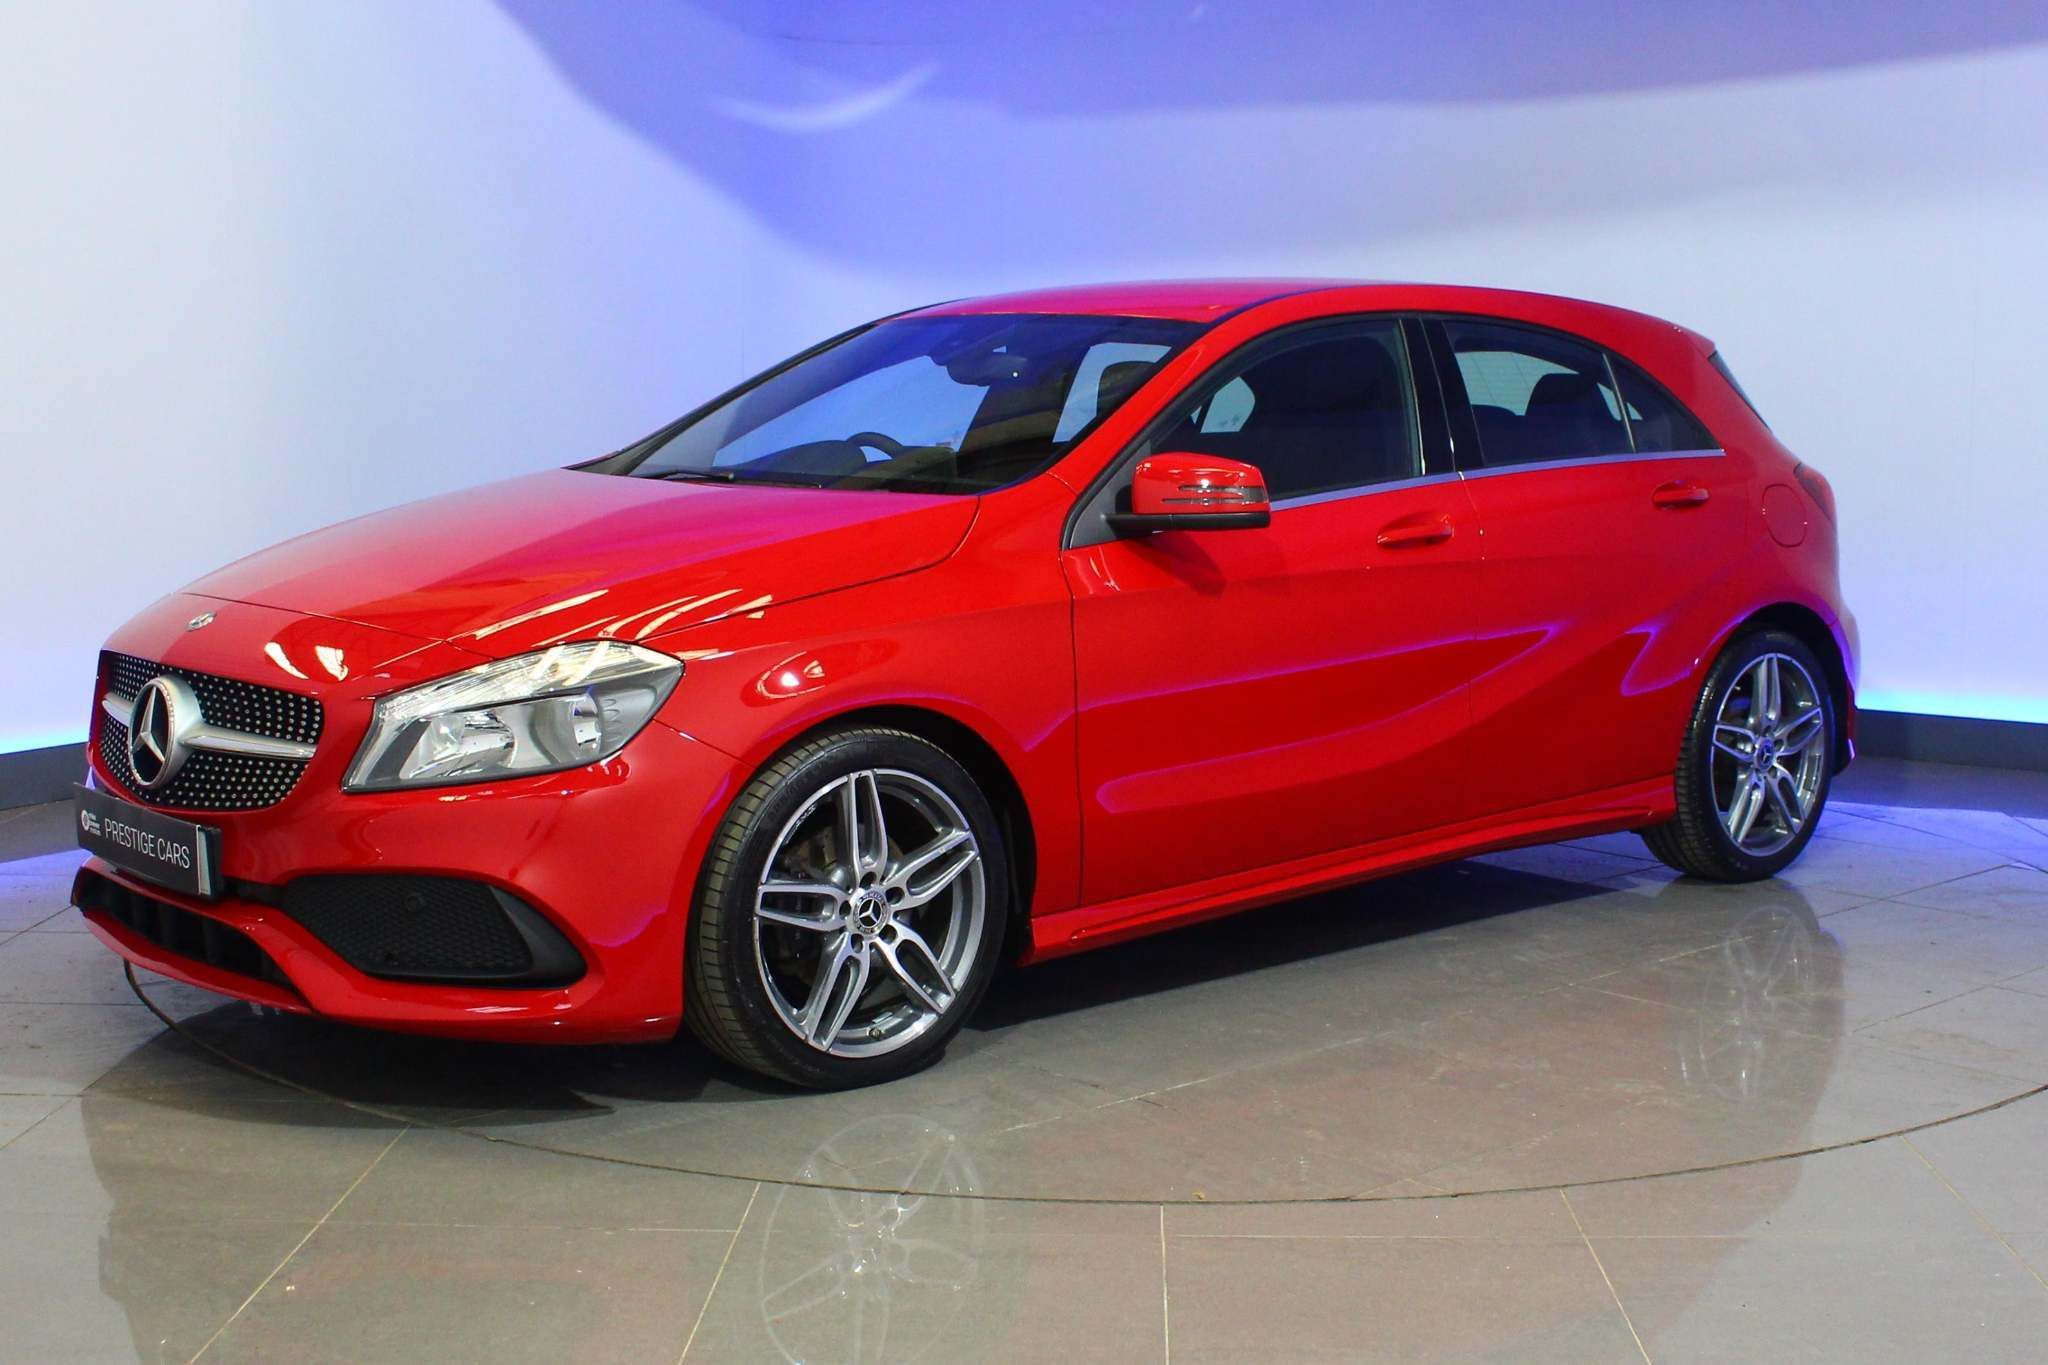 Used Mercedes-Benz A Class 1.6 A160 Amg Line (s/s) 5dr